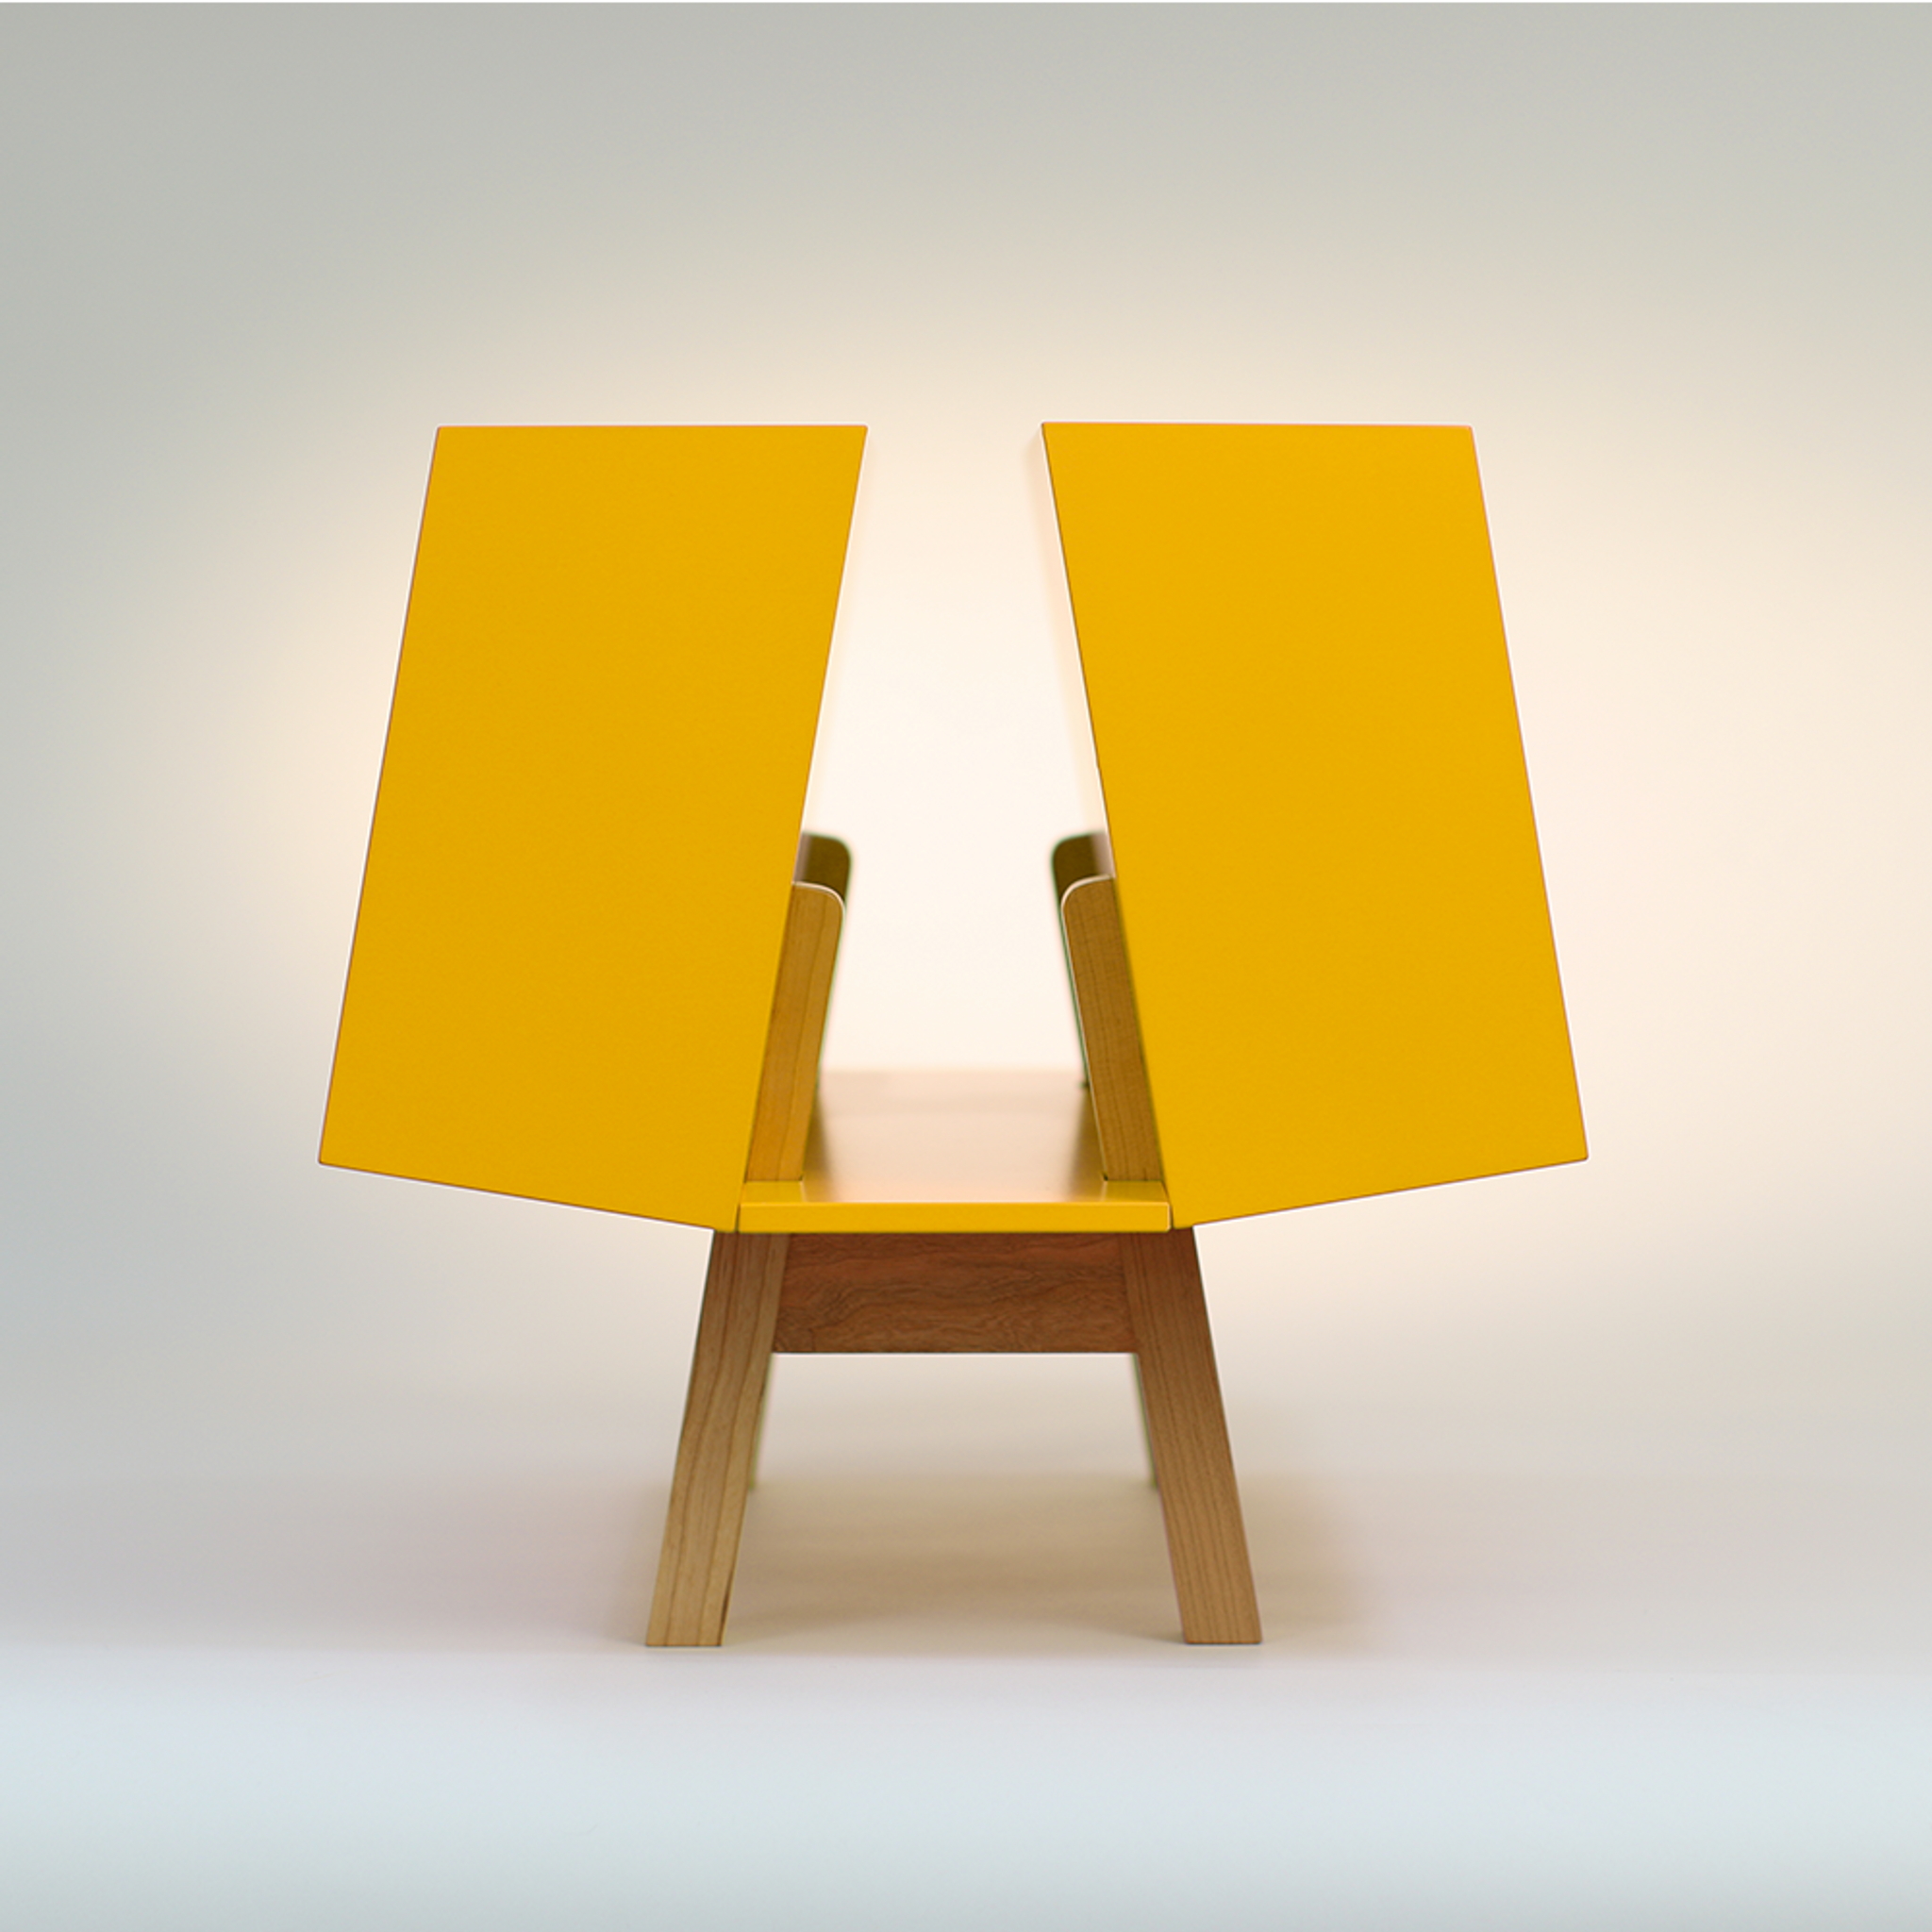 Isokon Penguin Donkey Mark 2: Yellow